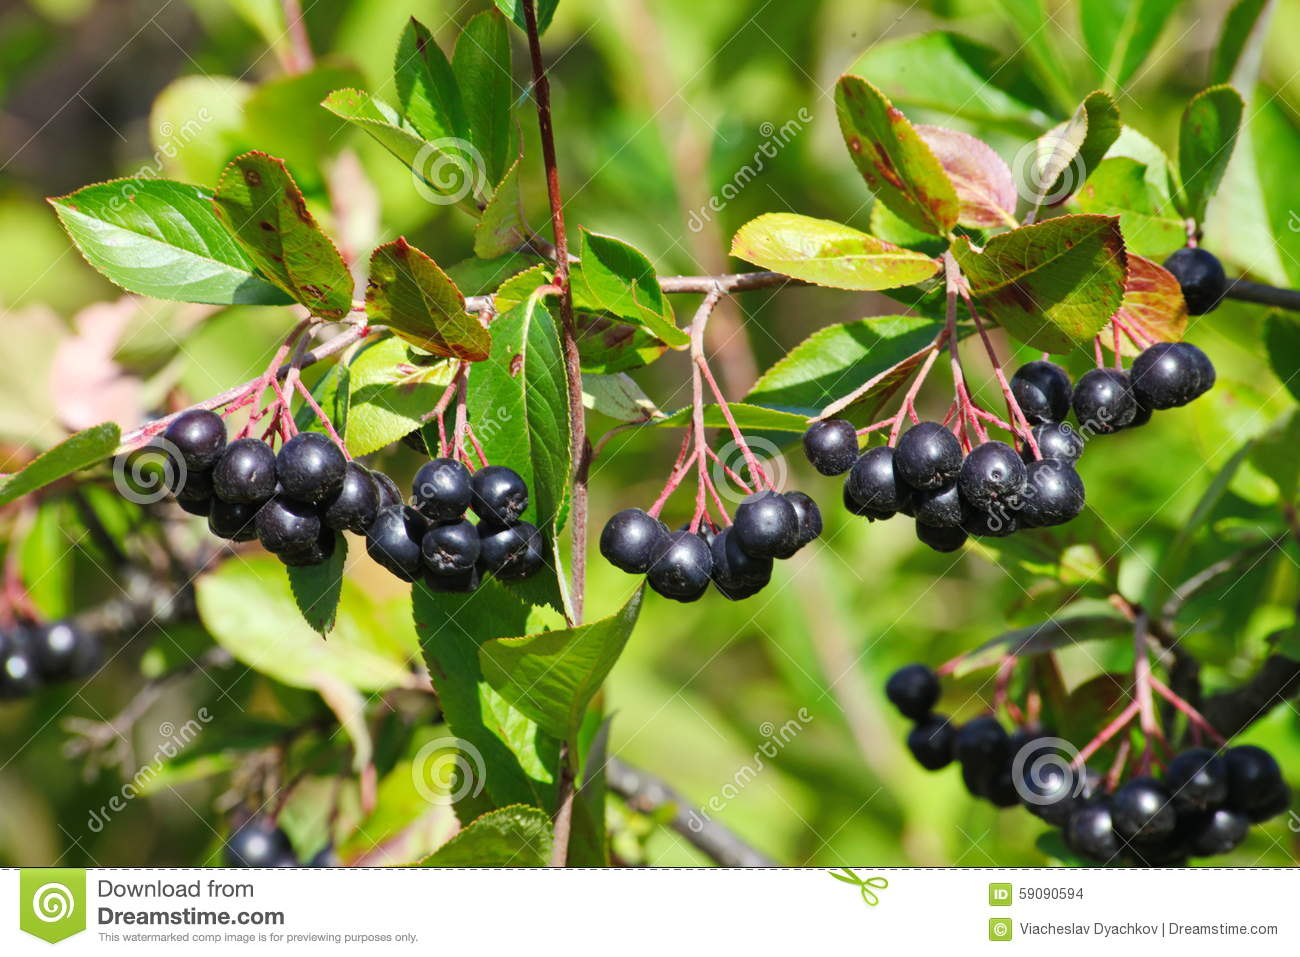 Black Aronia Berry Quince Growing Brush And Hidden Green Foliage.